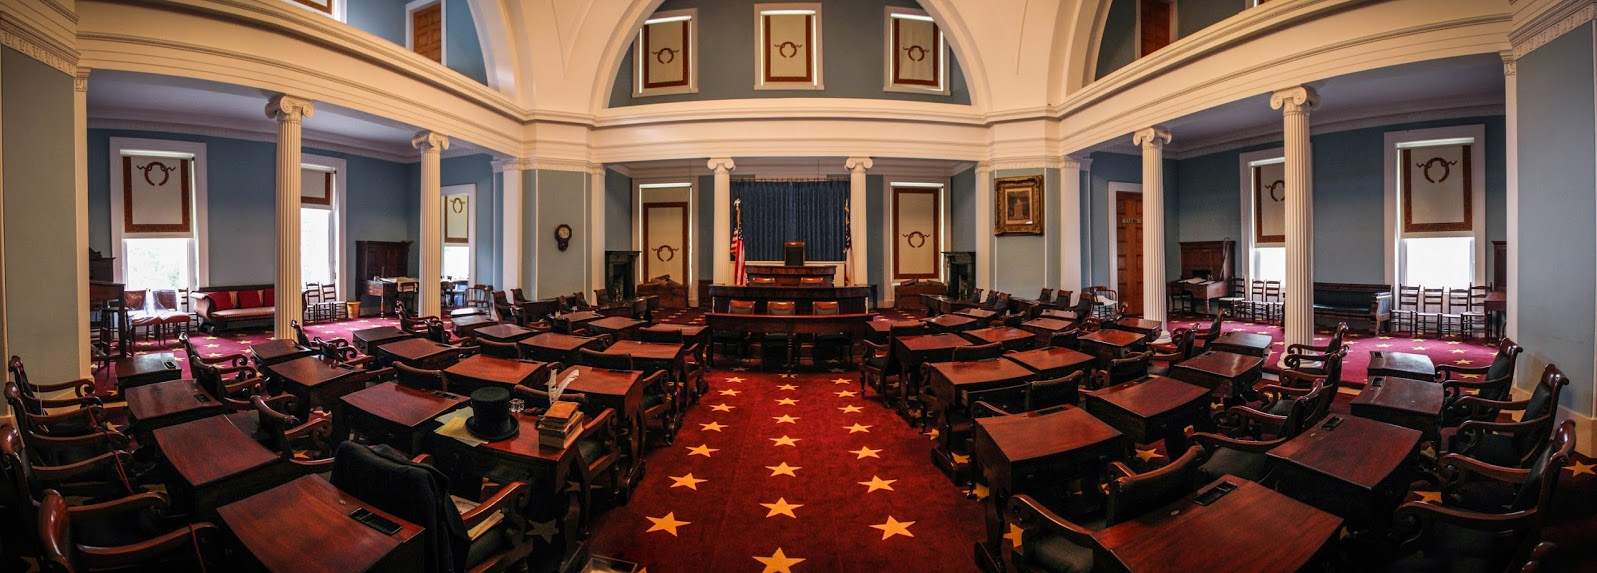 The North Carolina Senate Chamber ( Image )